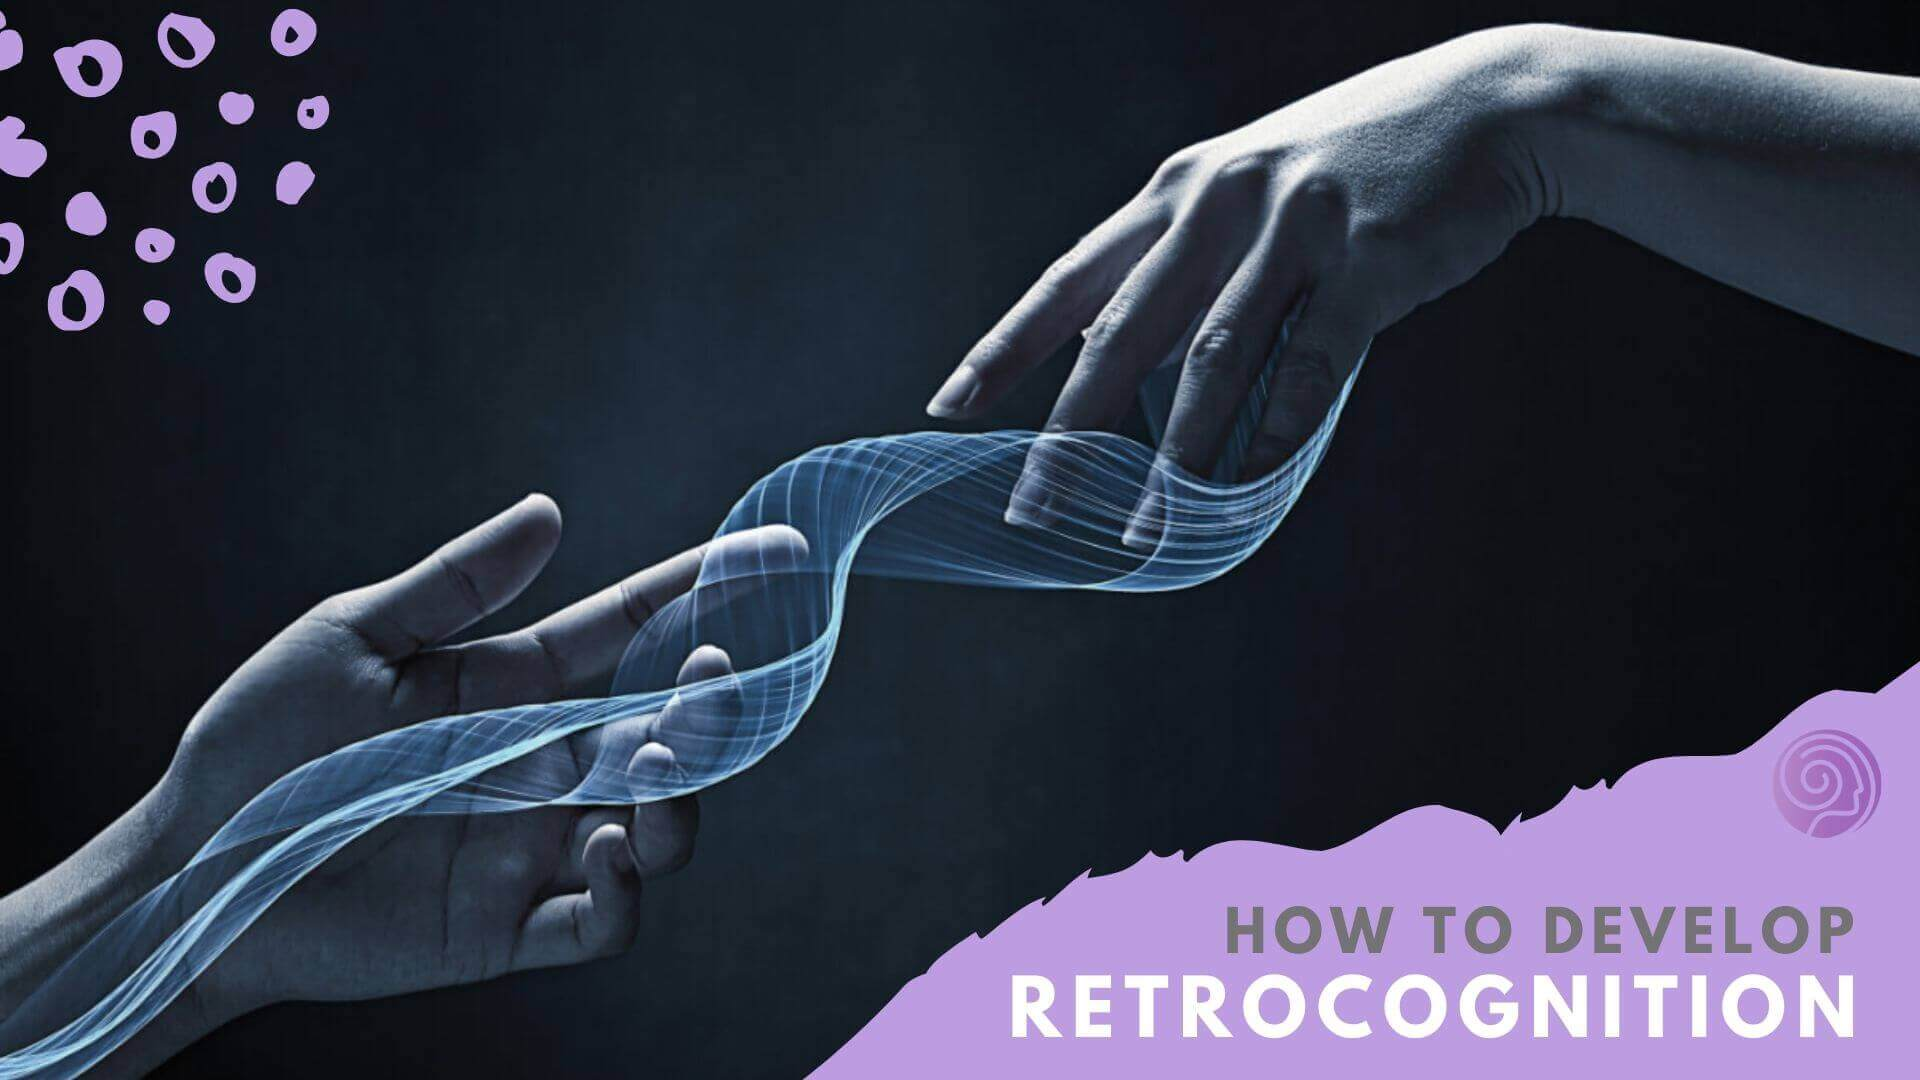 How to Develop Retrocognition